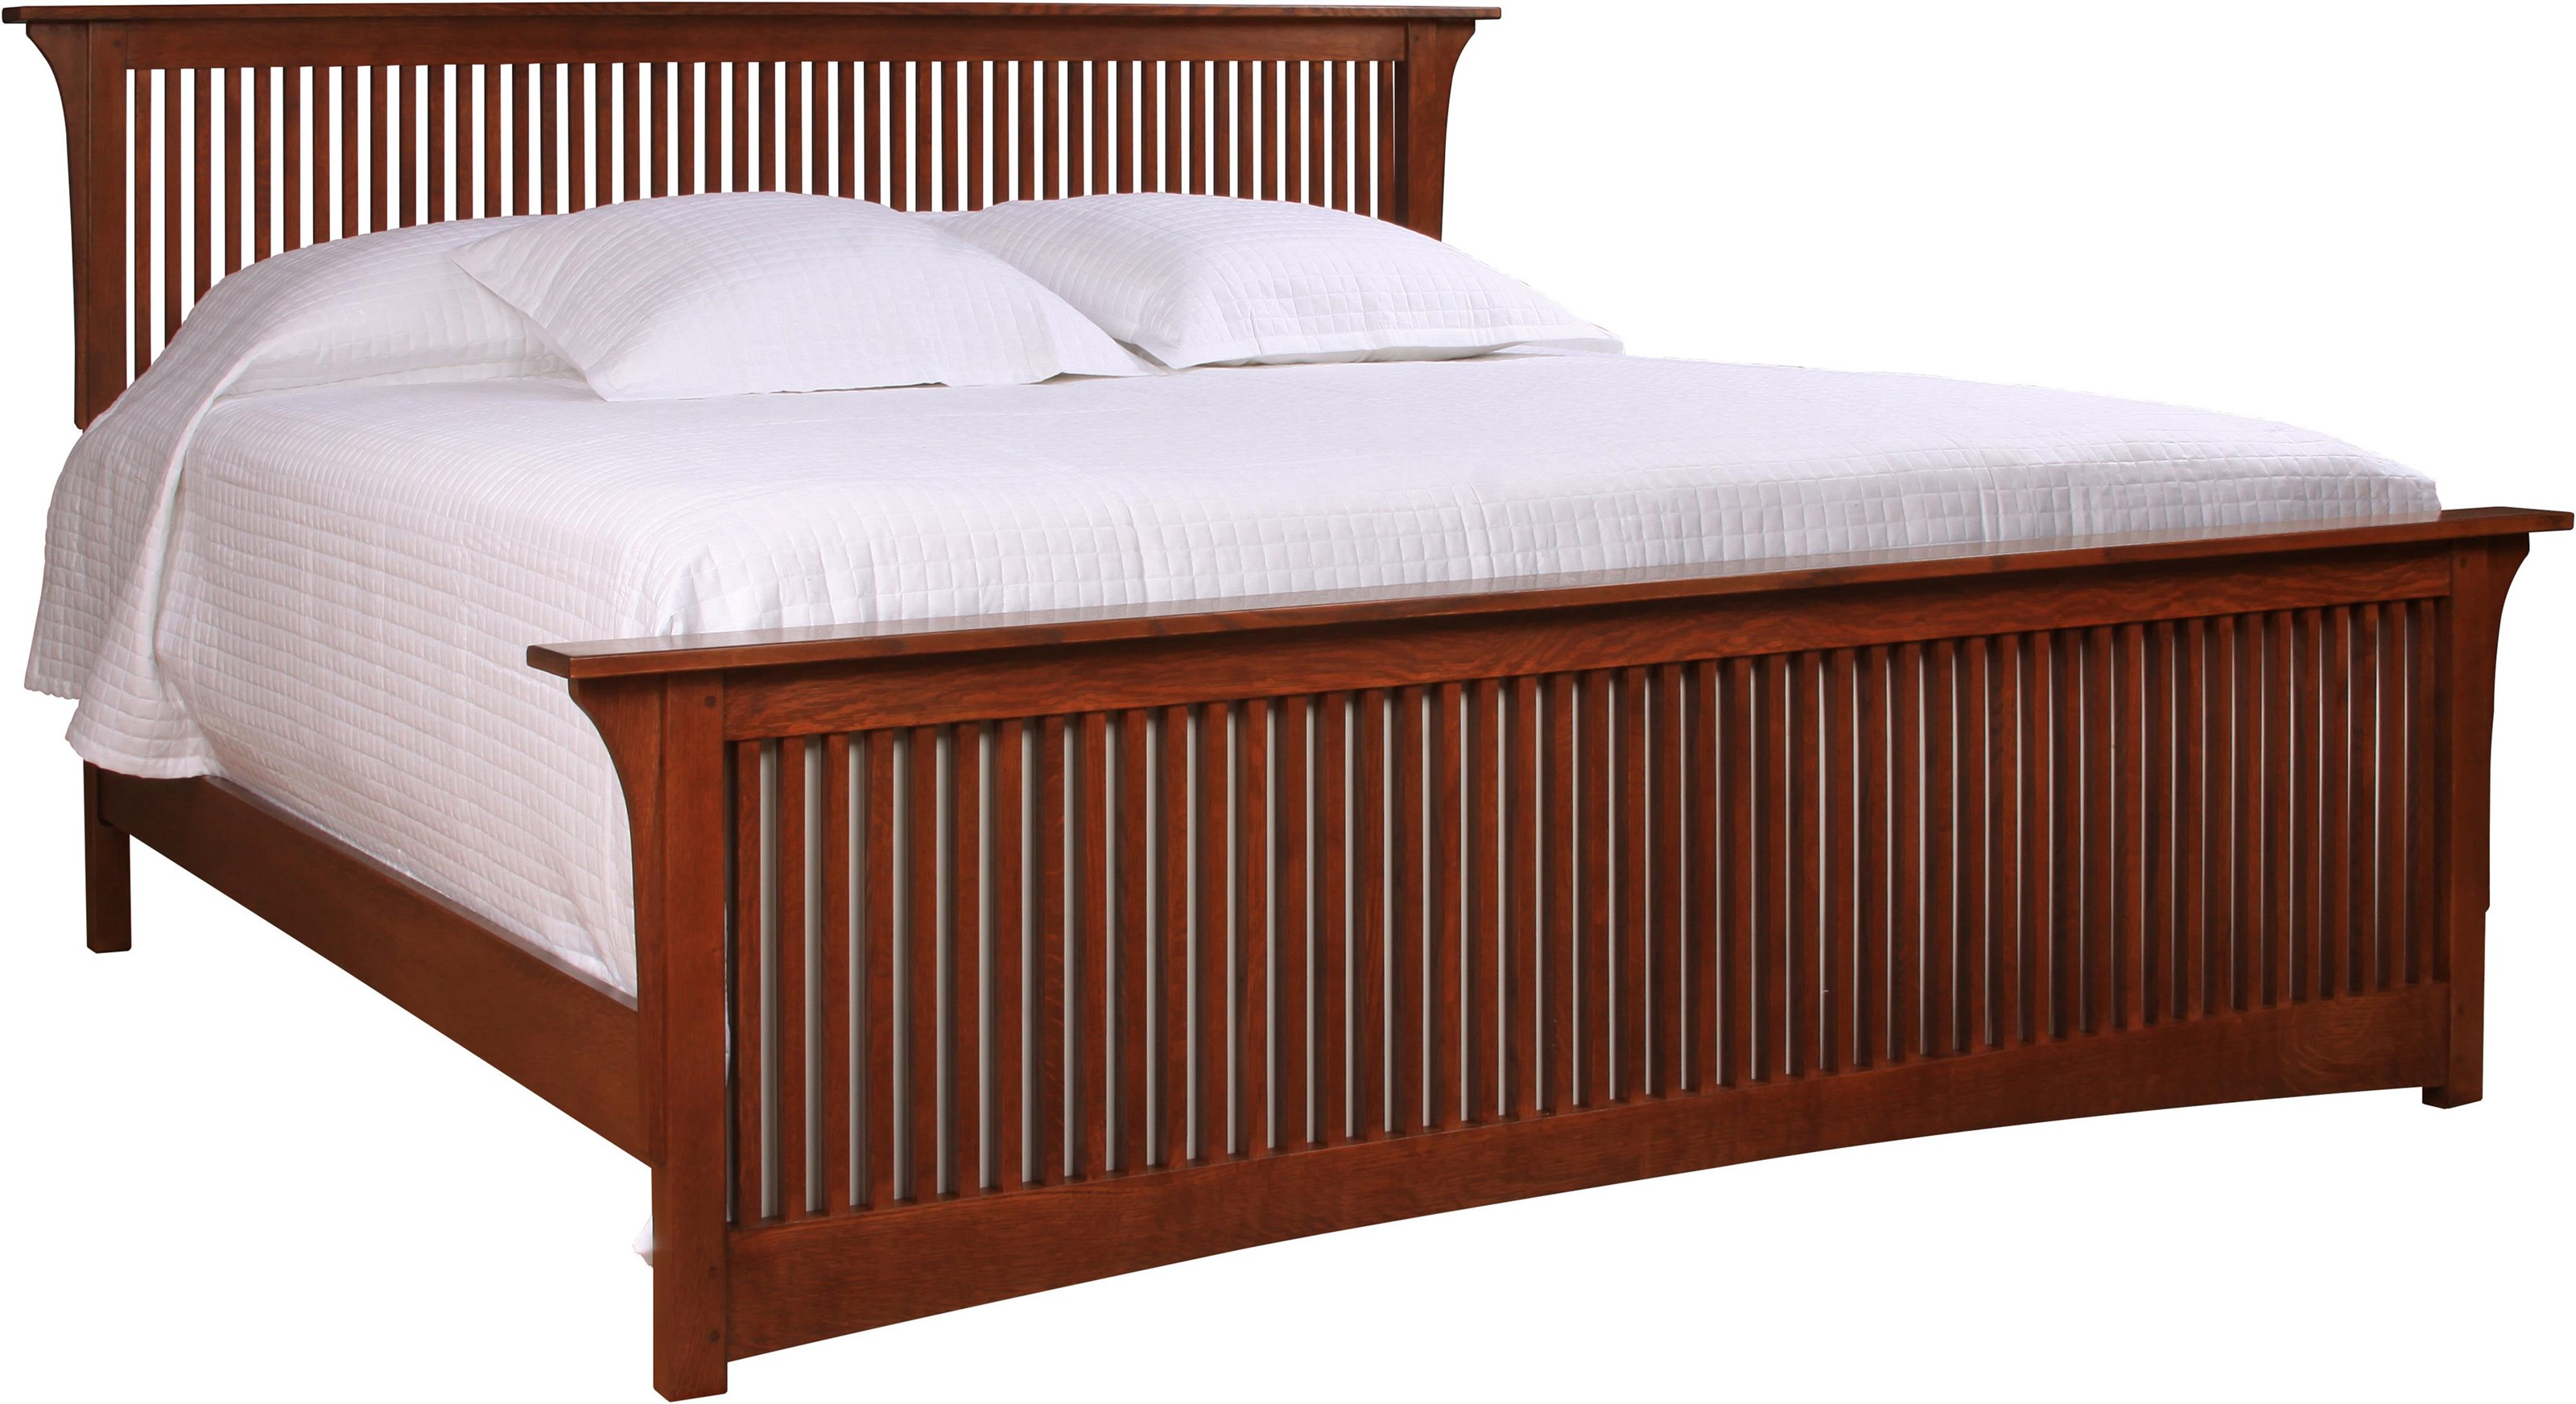 Oak Mission Classics King Spindle Bed with Low Footboard by Stickley at Williams & Kay